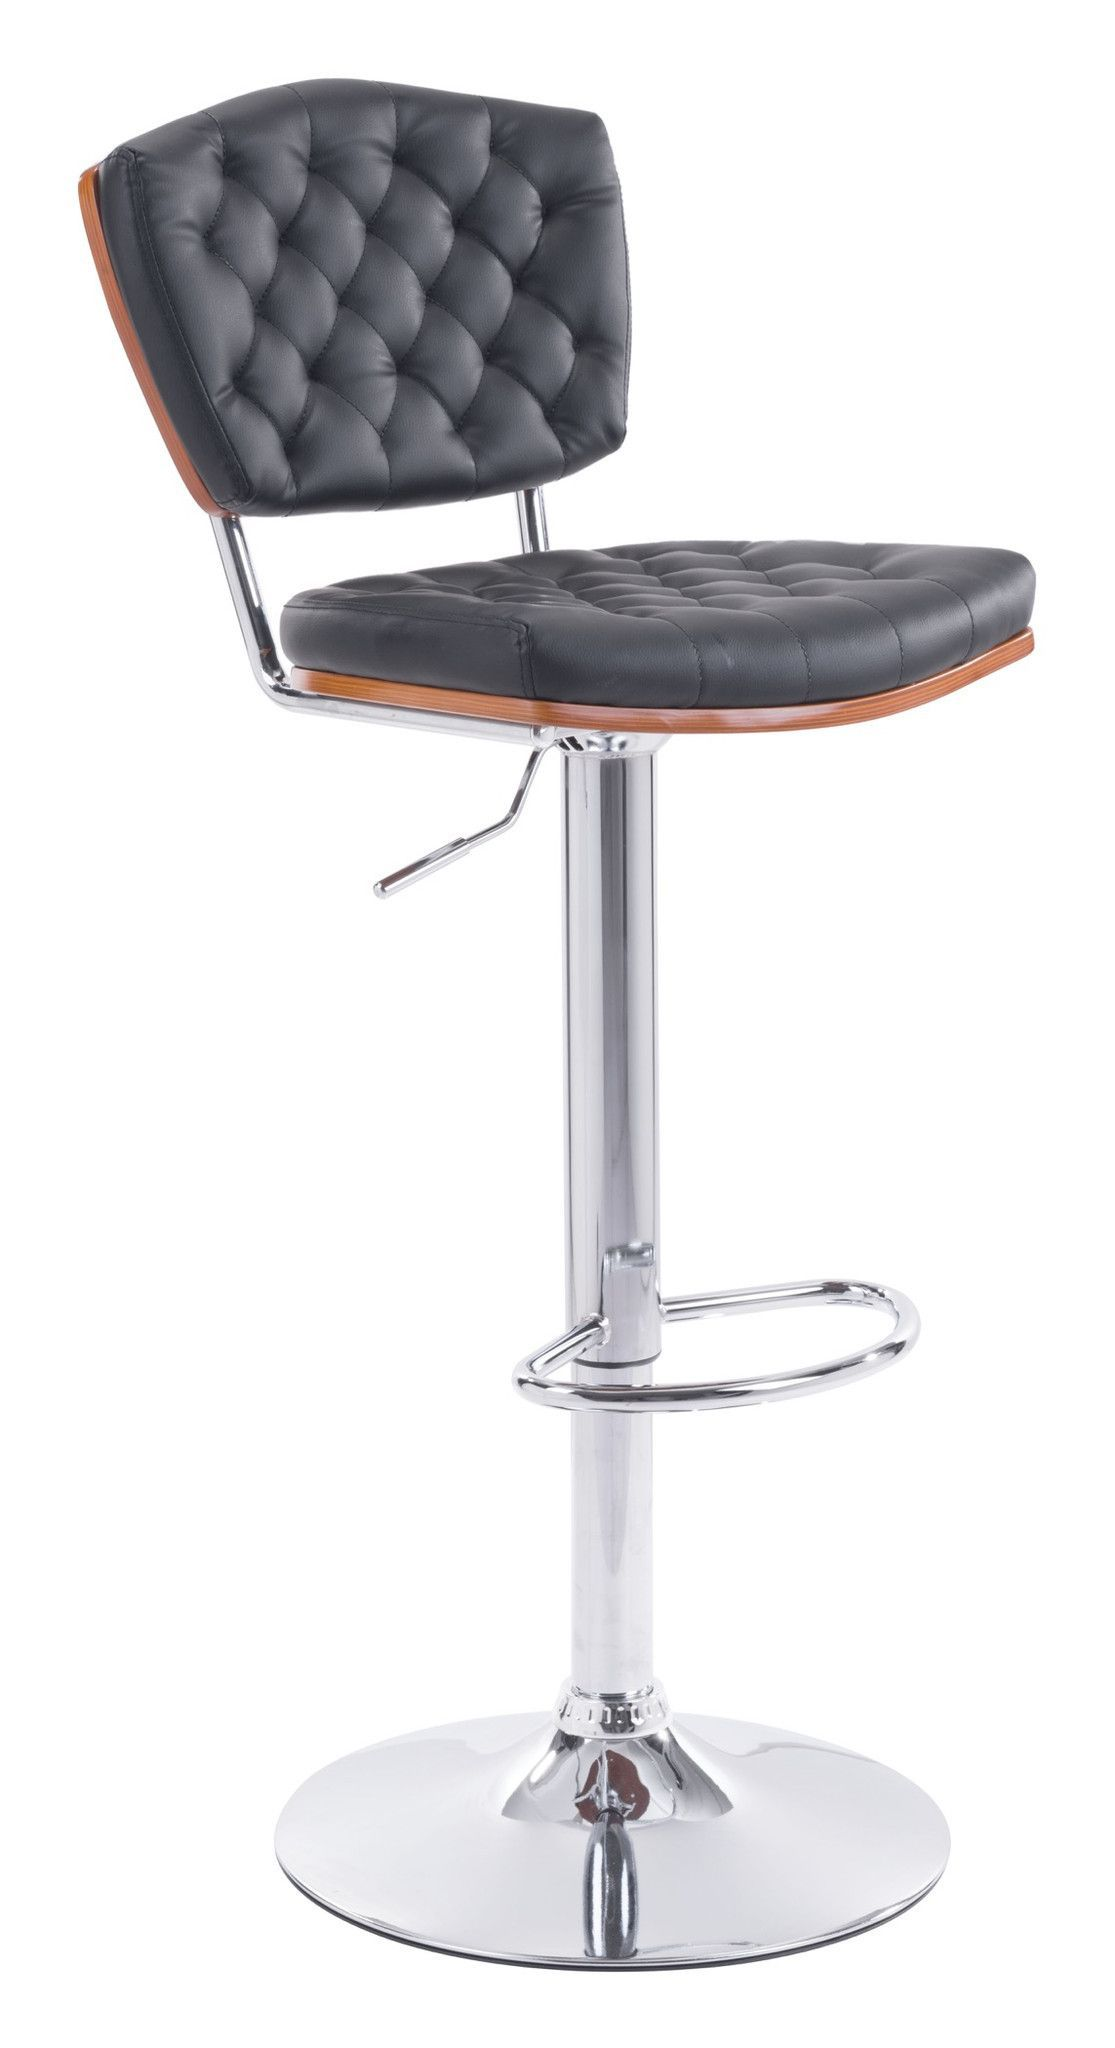 Tiger Bar Chair in Tufted Black Leatherette with Wood Accent on Chromed Steel